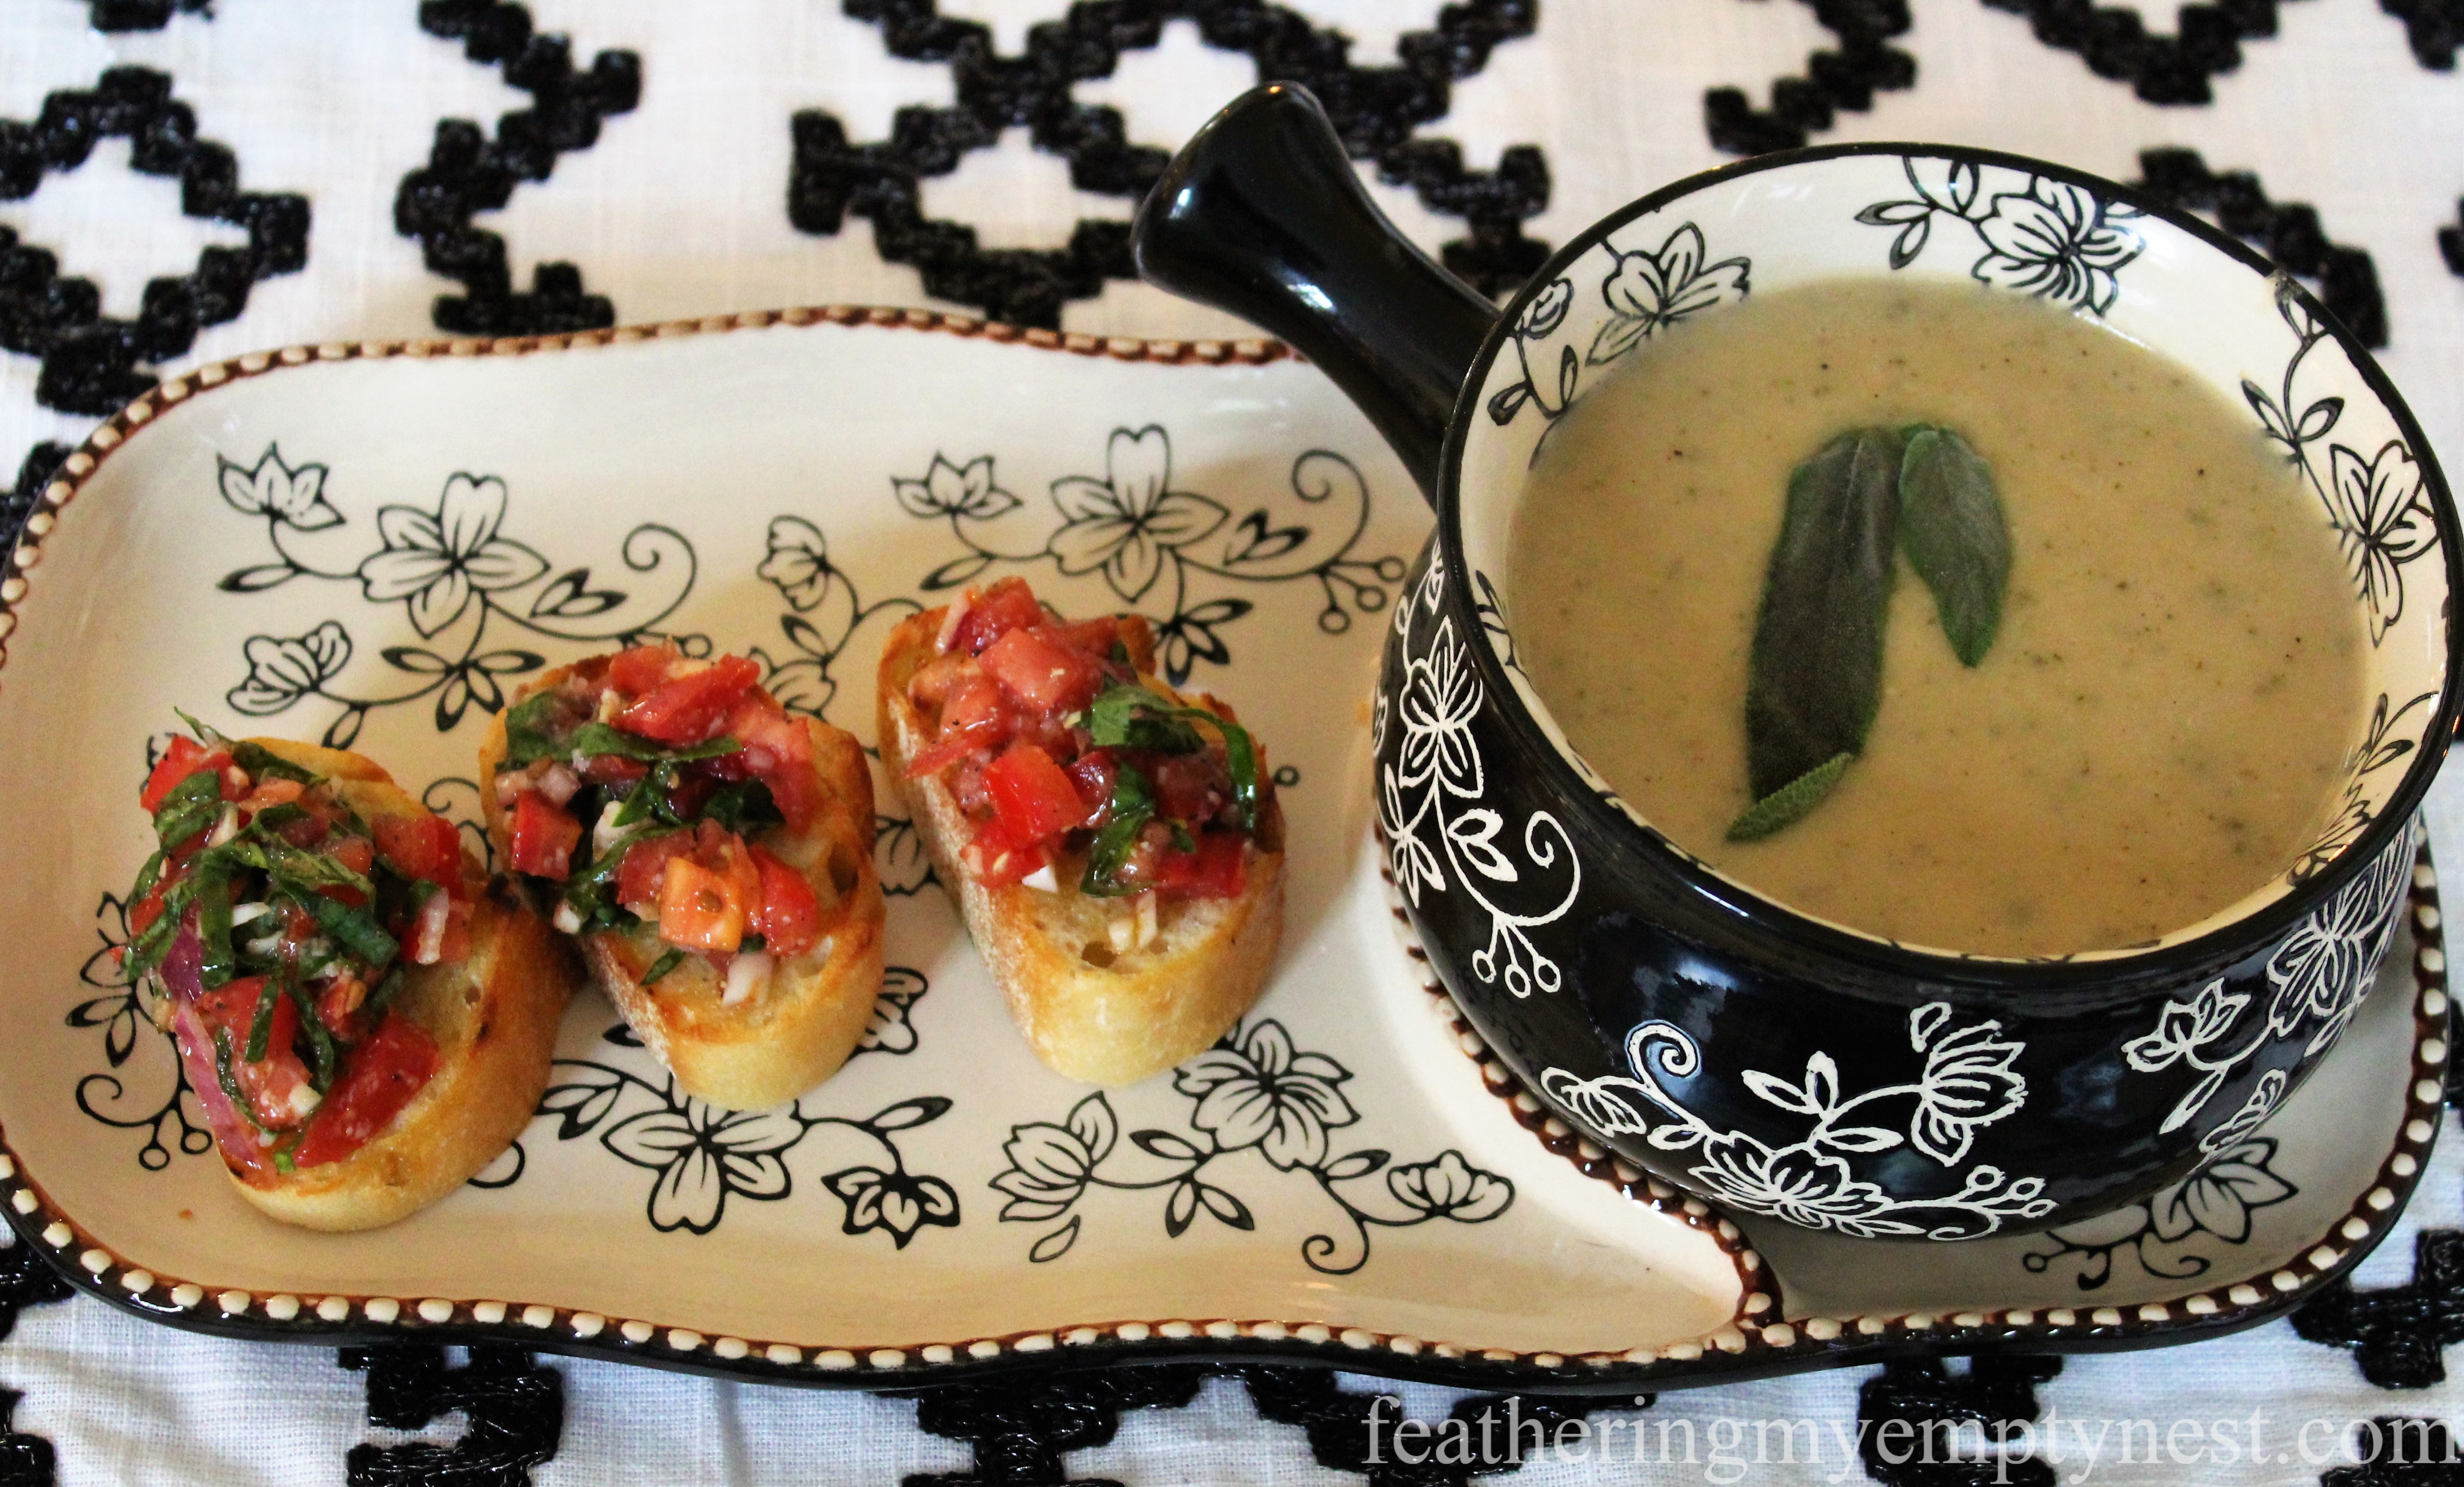 White Bean Soup & Bruschetta make a warm and comforting winter meal